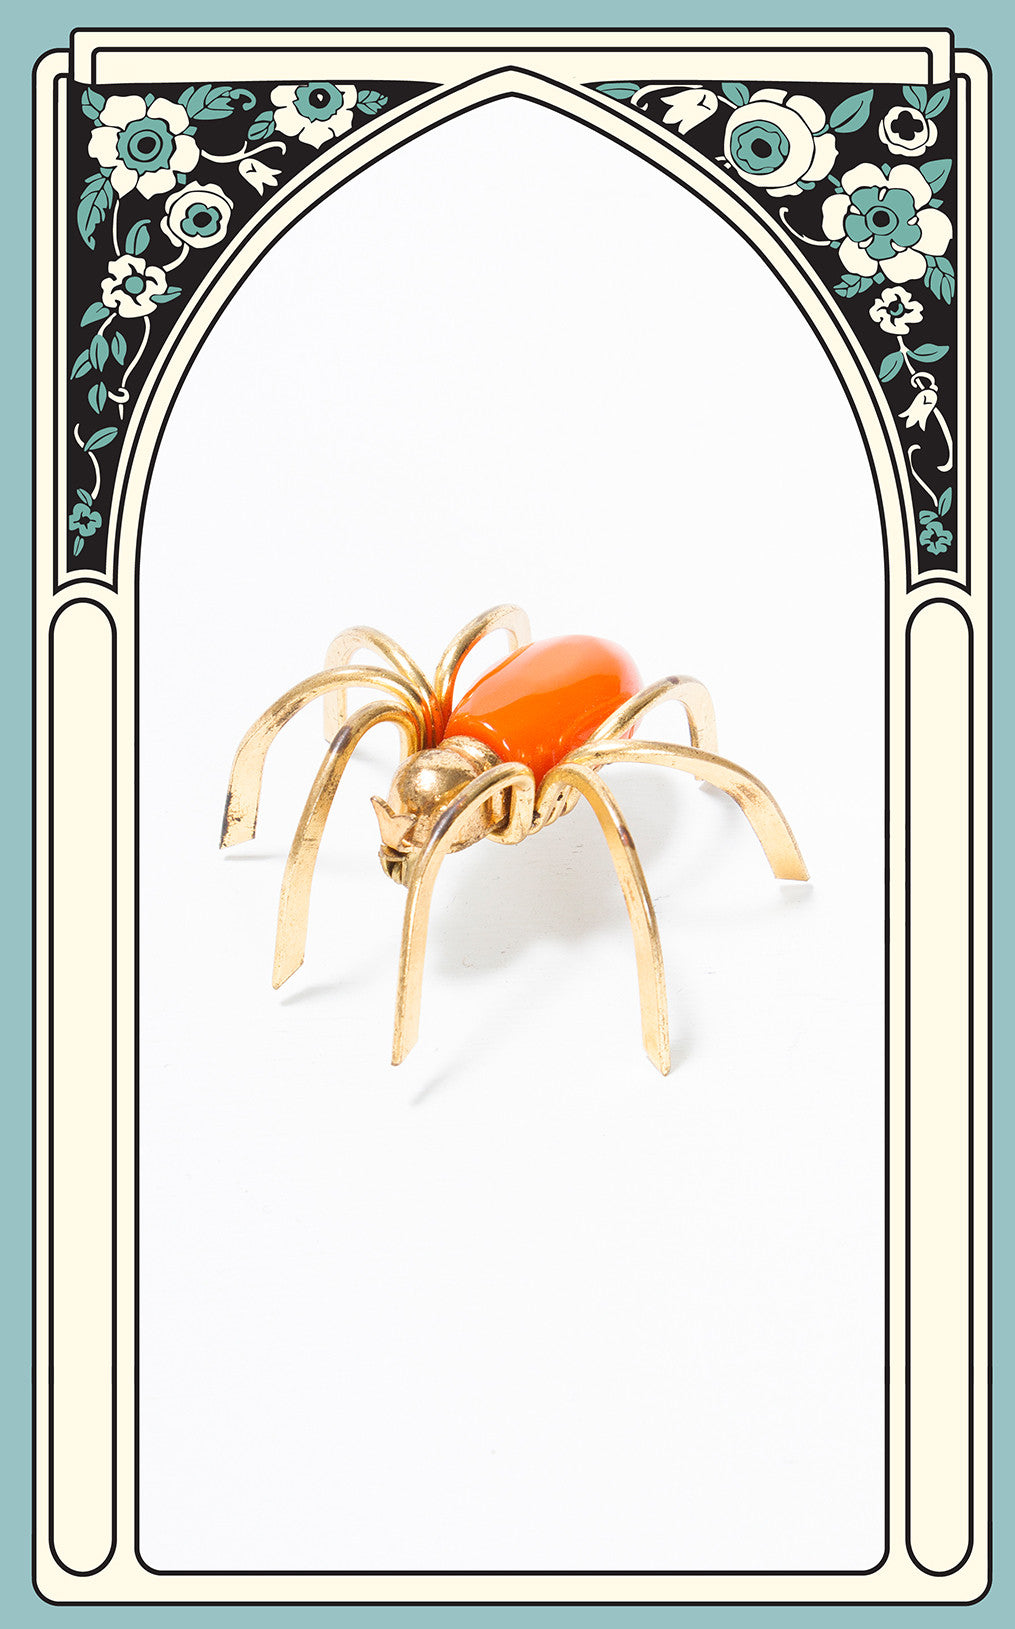 SOLD -- 1930s Orange Bakelite Spider Brooch